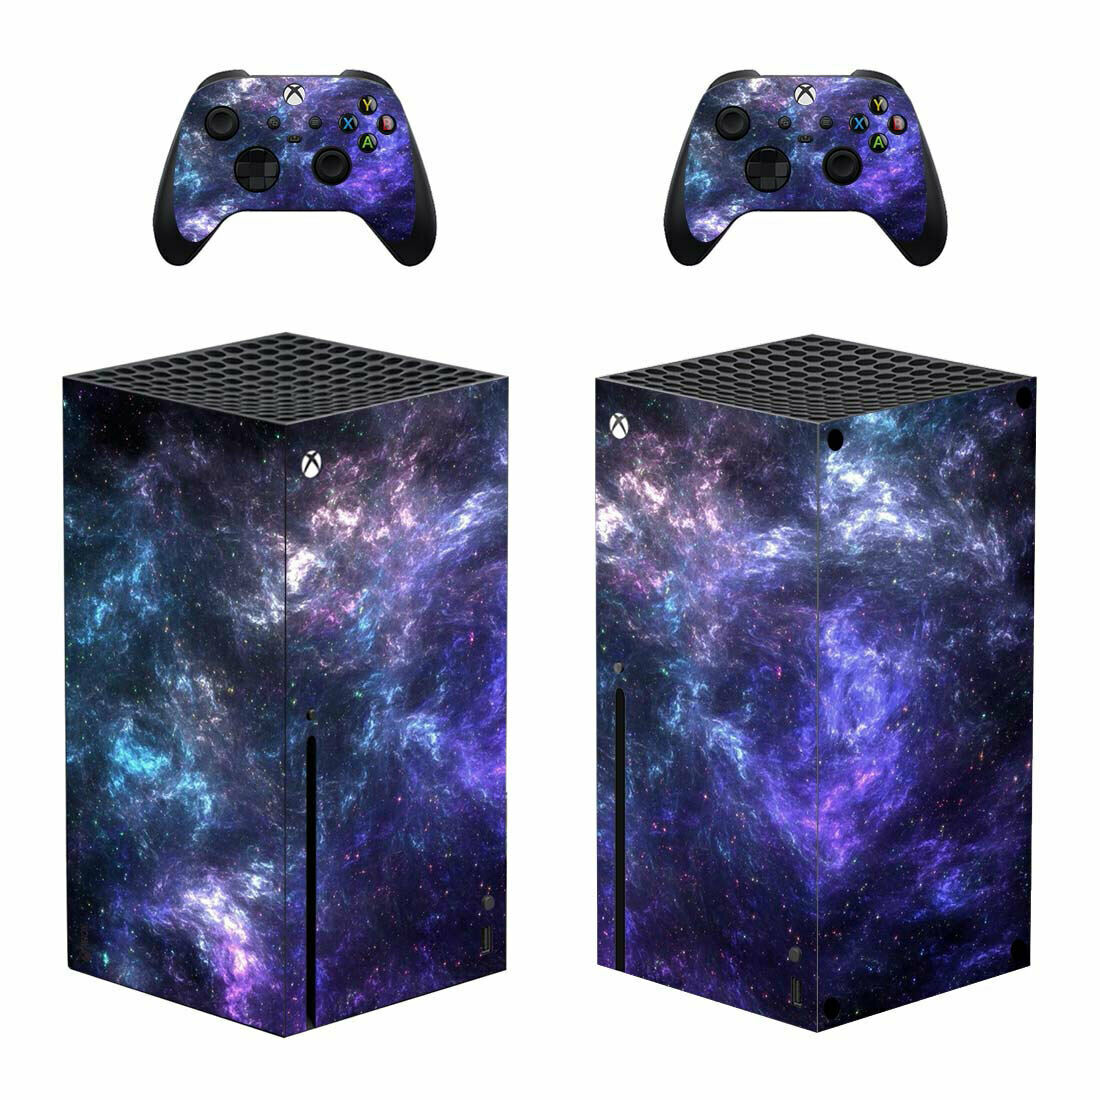 Milky Way Vinyl Skin Decal Sticker Cover Xbox Series X Console & 2 Controllers